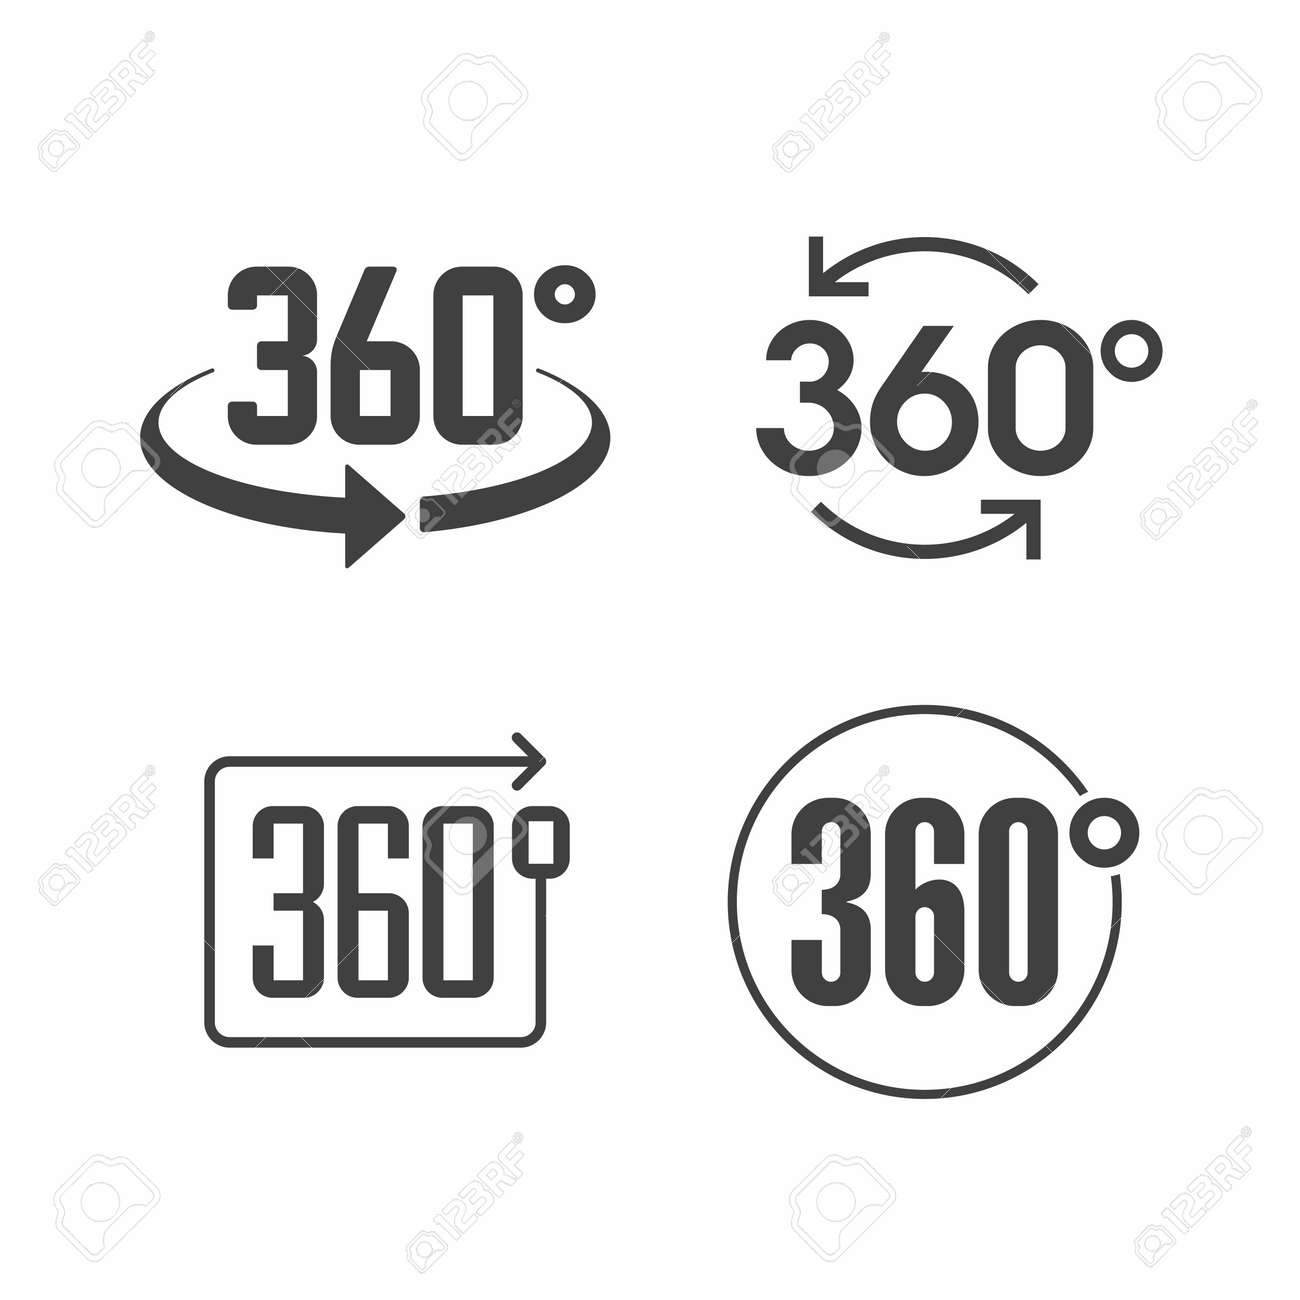 360 degrees view sign icon Stock Vector - 49822463